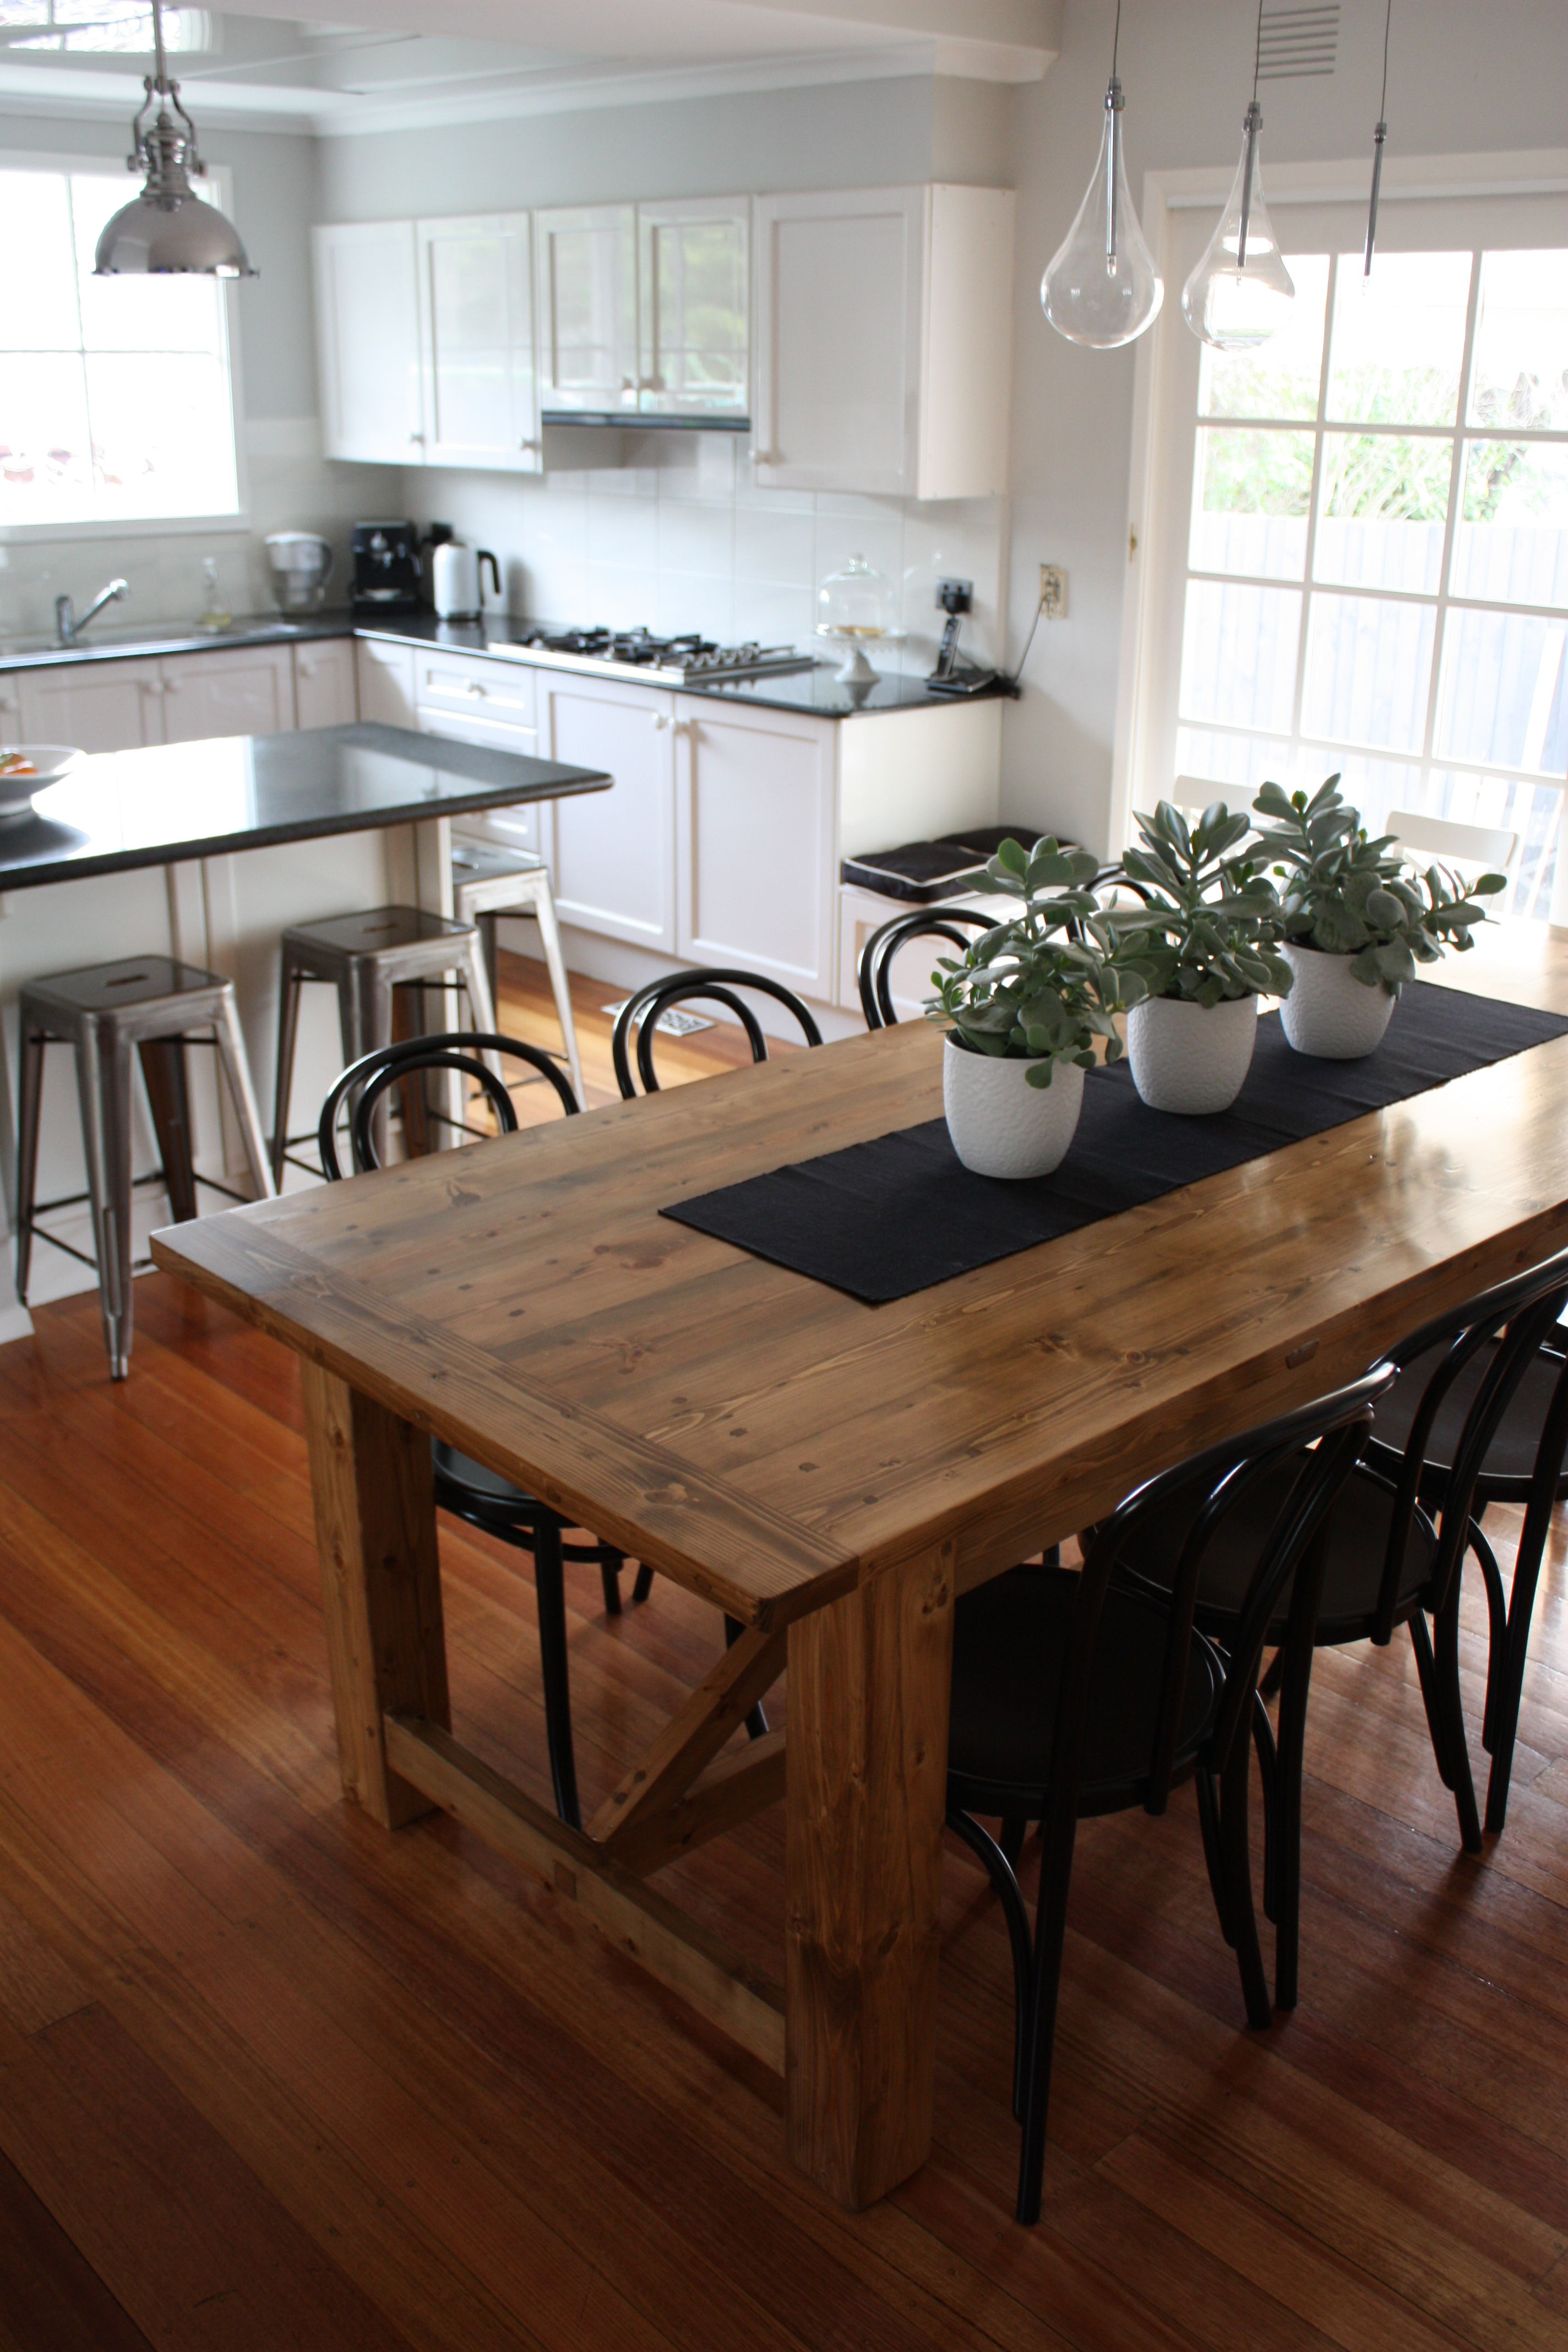 Rustic Wooden Kitchen Table Rustic Dining Table Pairs With Bentwood Chairs Stools Chairs